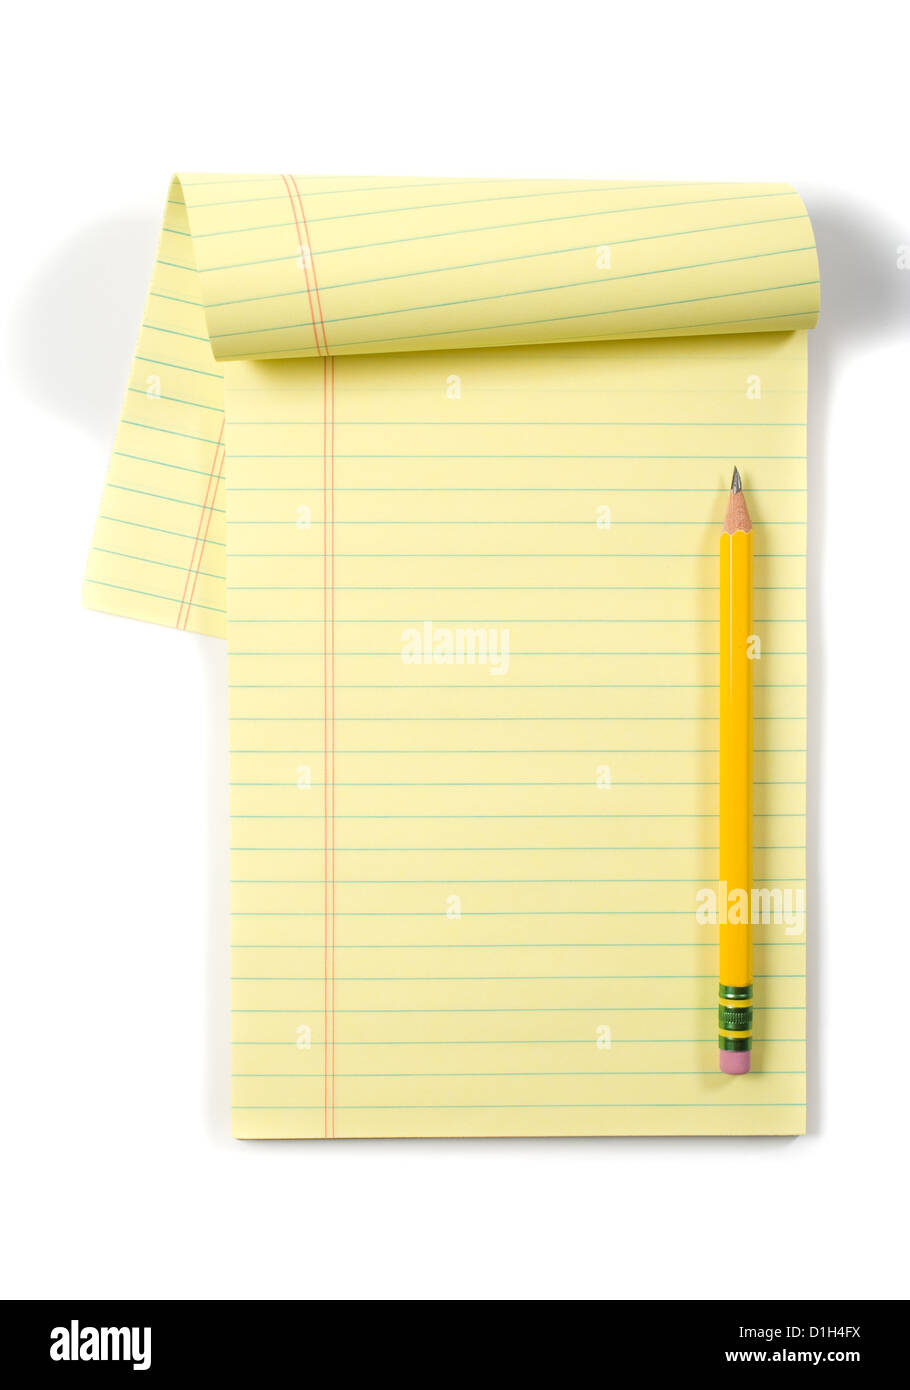 Legal Notepad Isolated on White - Stock Image